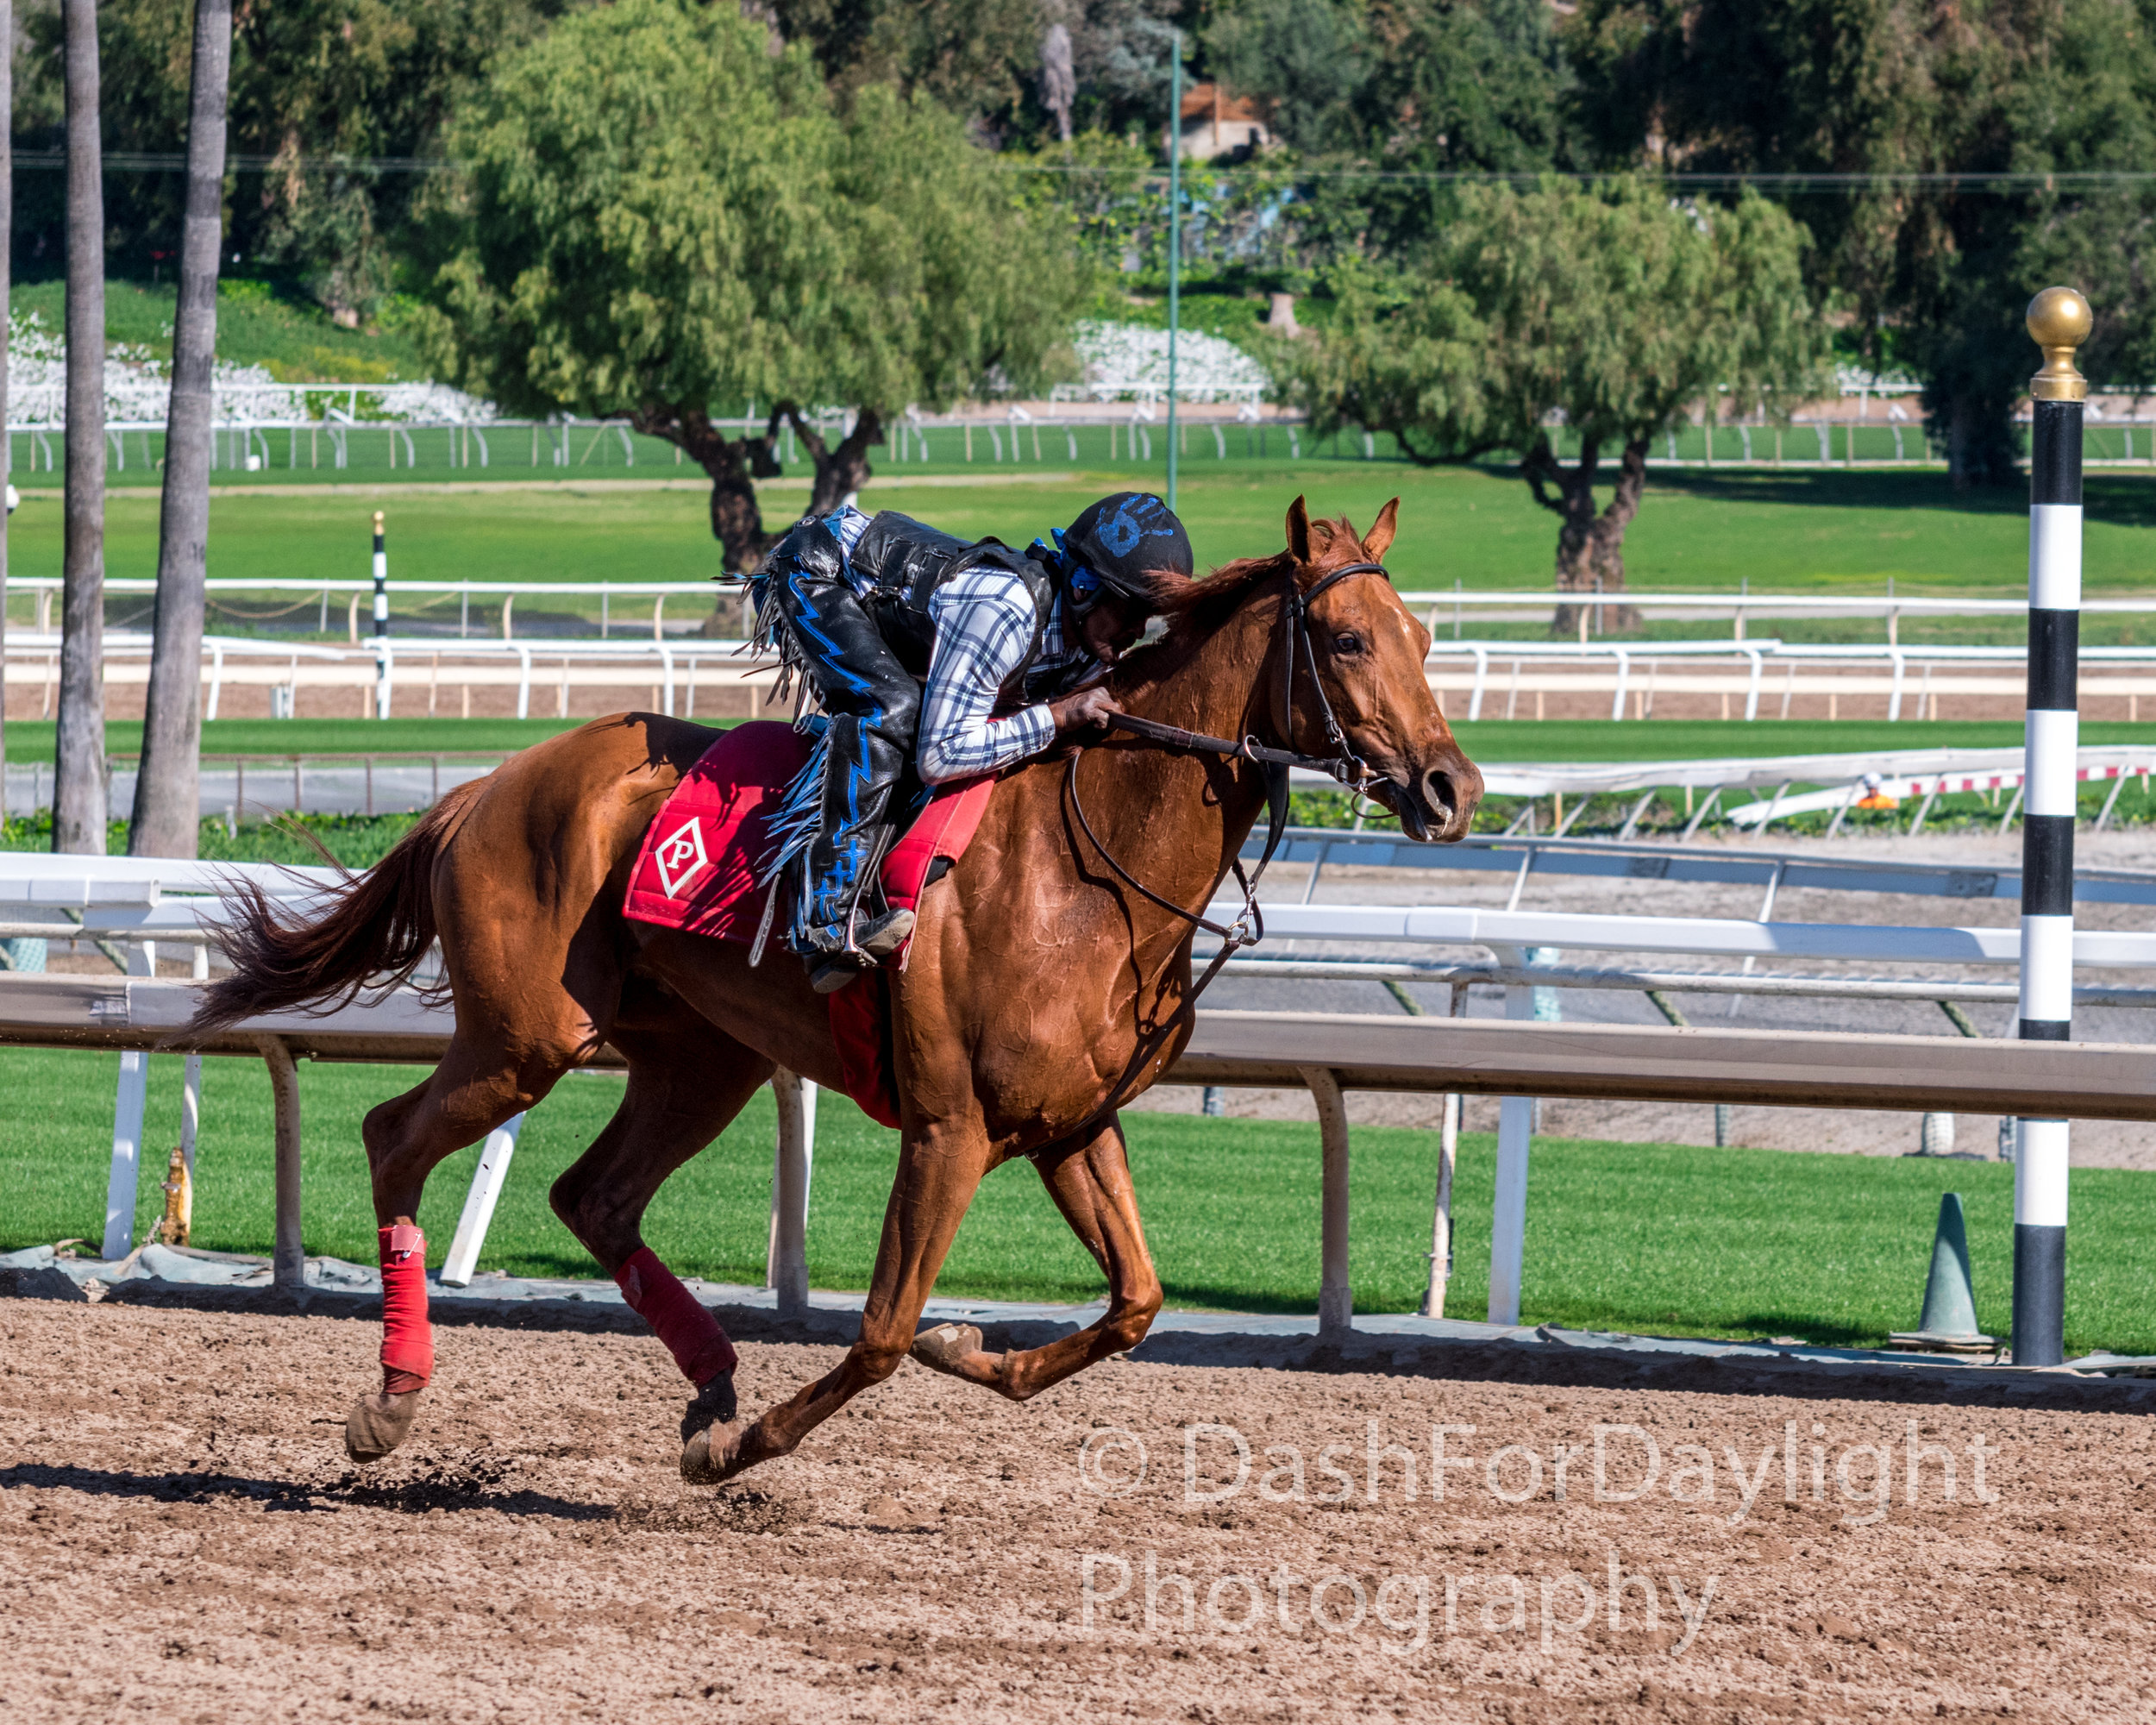 DSC_0535 Breezing Chestnut at Santa Anita